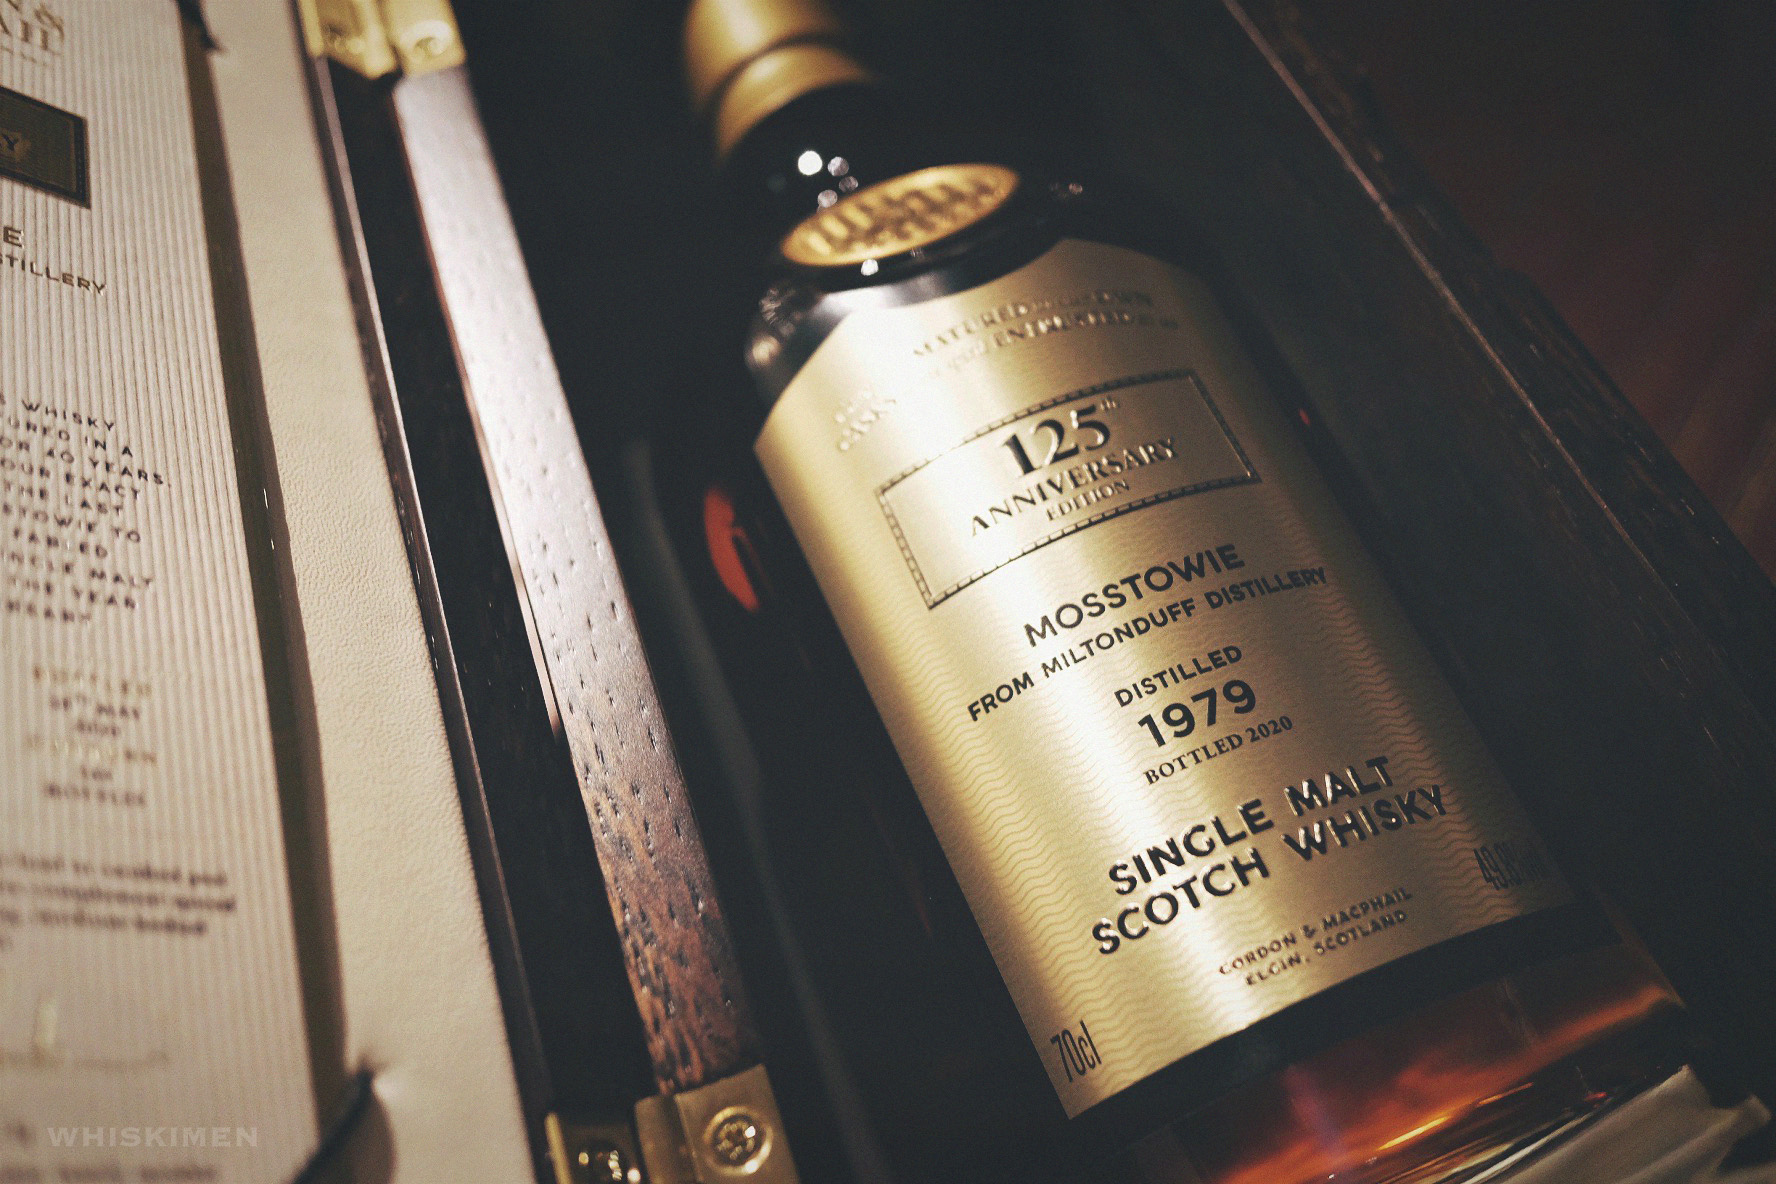 Gordon & MacPhail The Last Cask Series Mosstowie Miltonduff 1979 40 Year Old Single Malt Scotch Whisky, 125th Anniversary